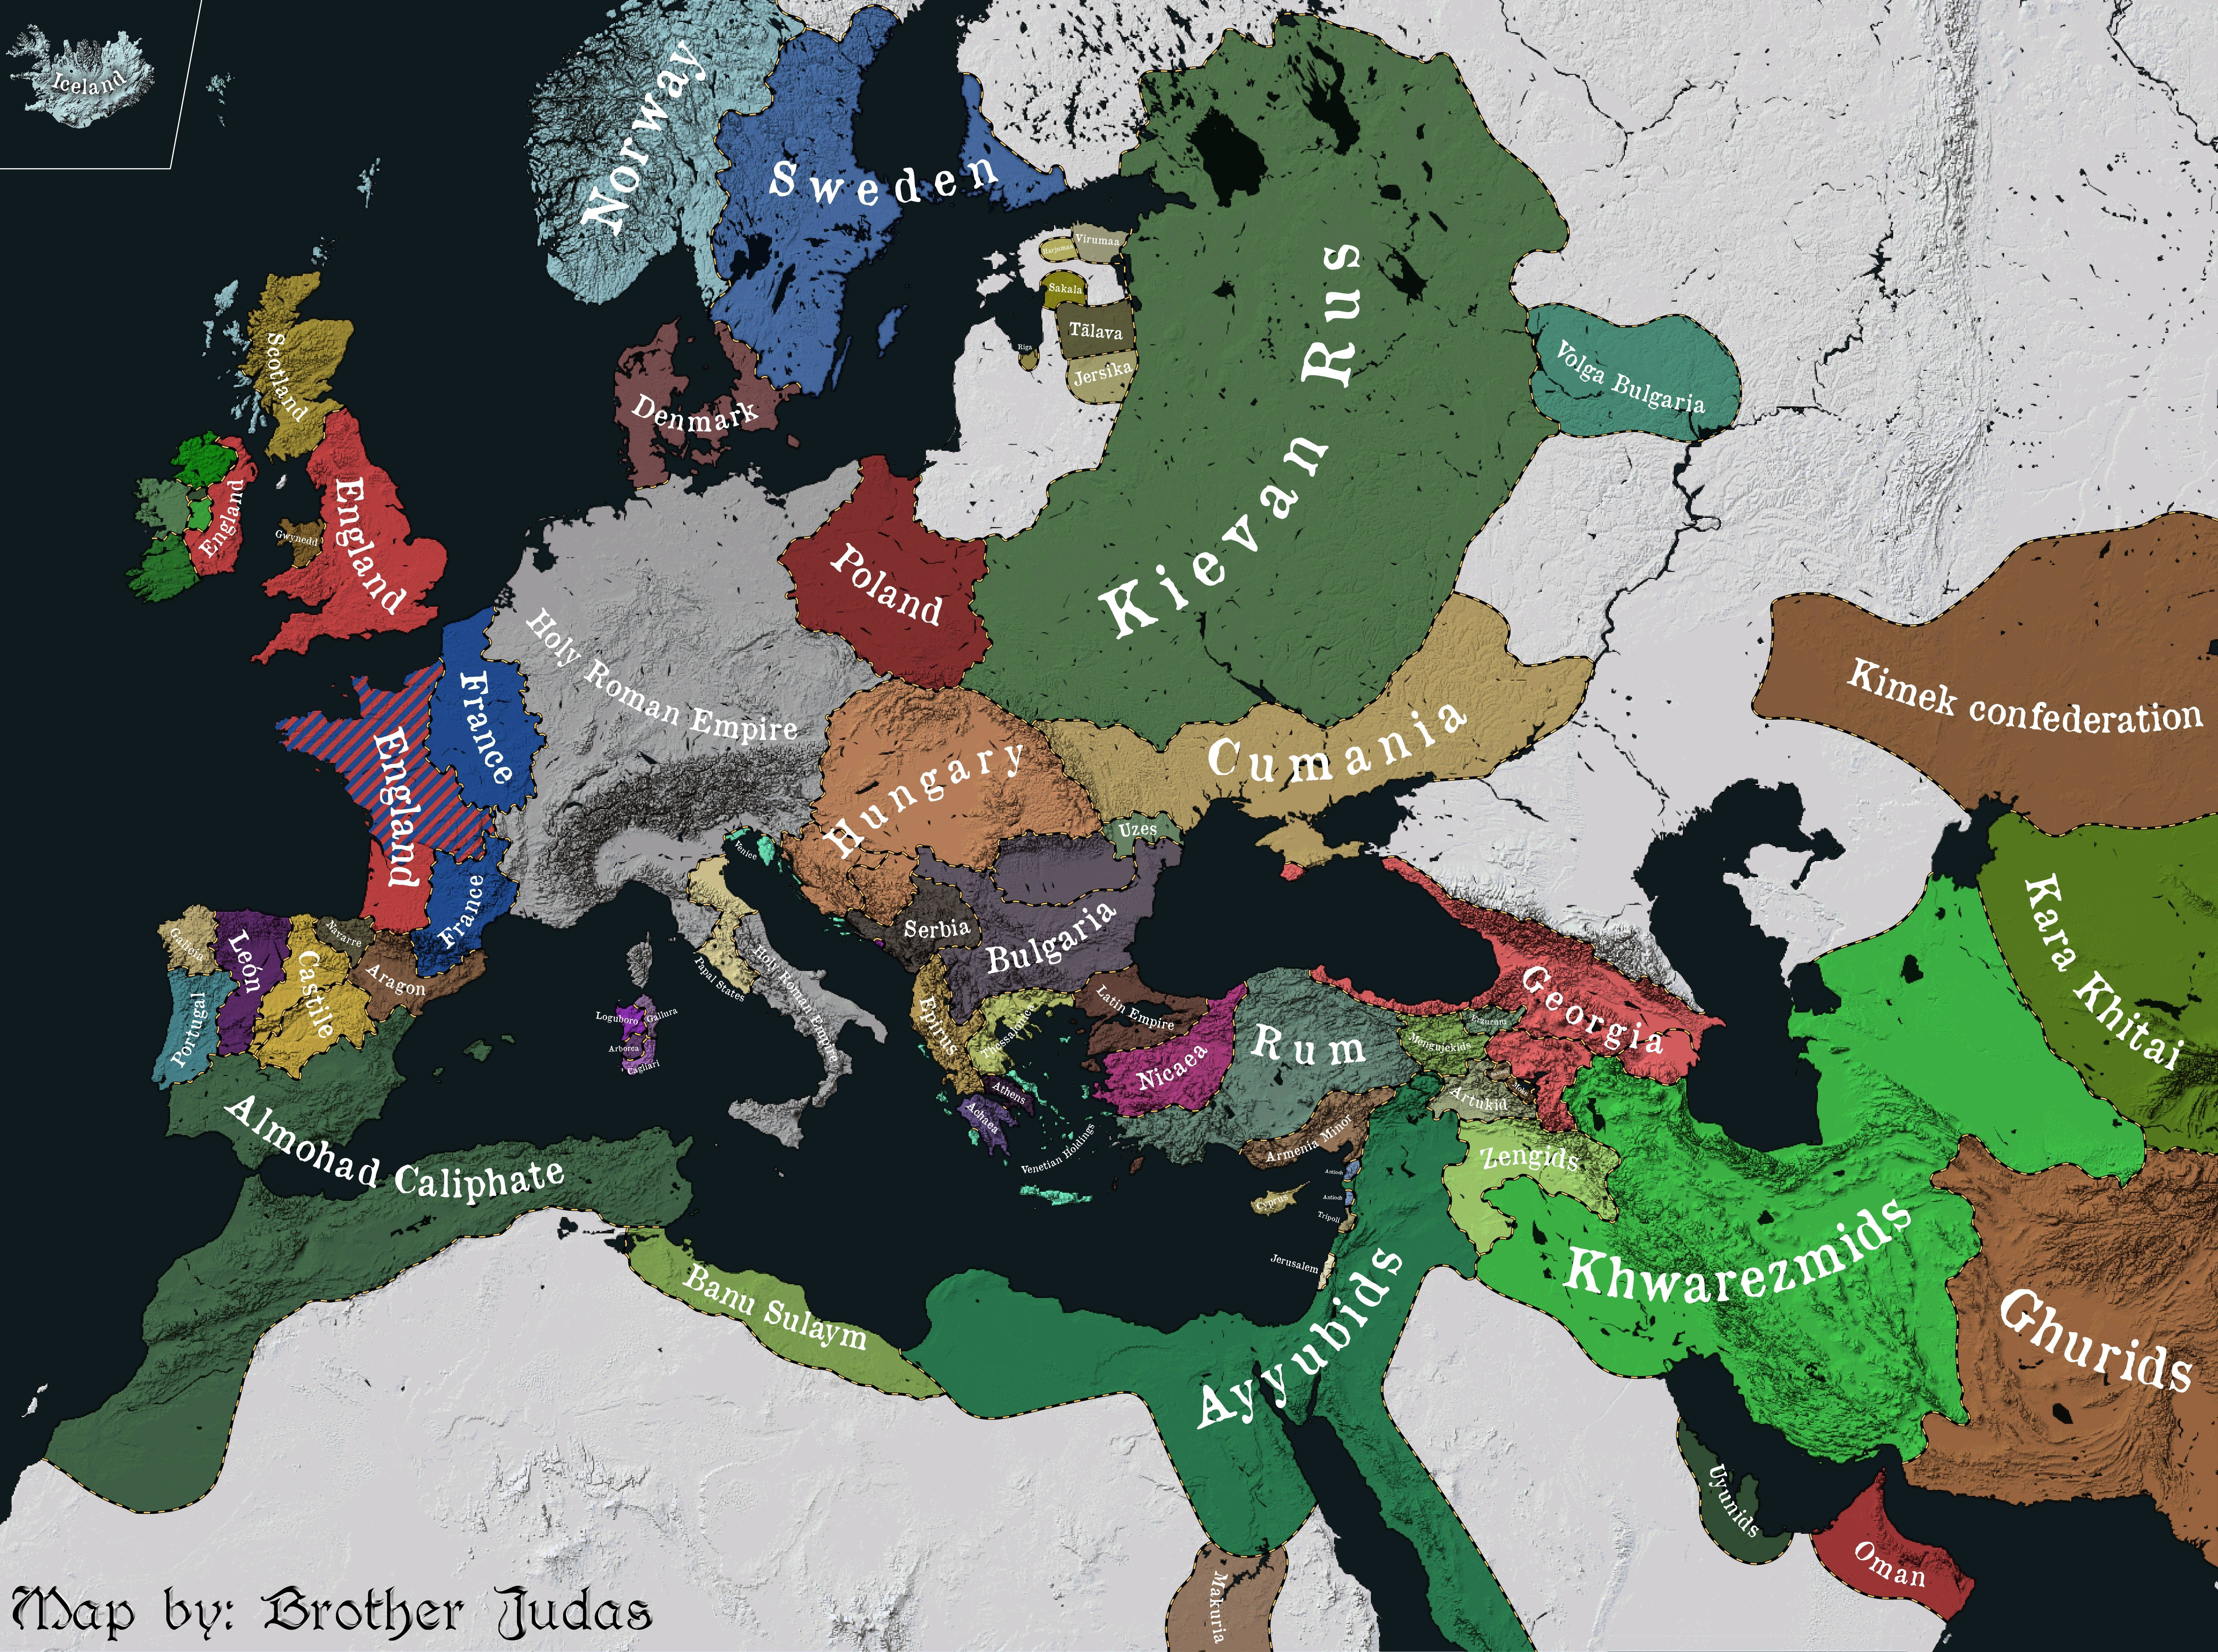 map of 13th century europe This is how Europe looked like in the 13th century   Europe map